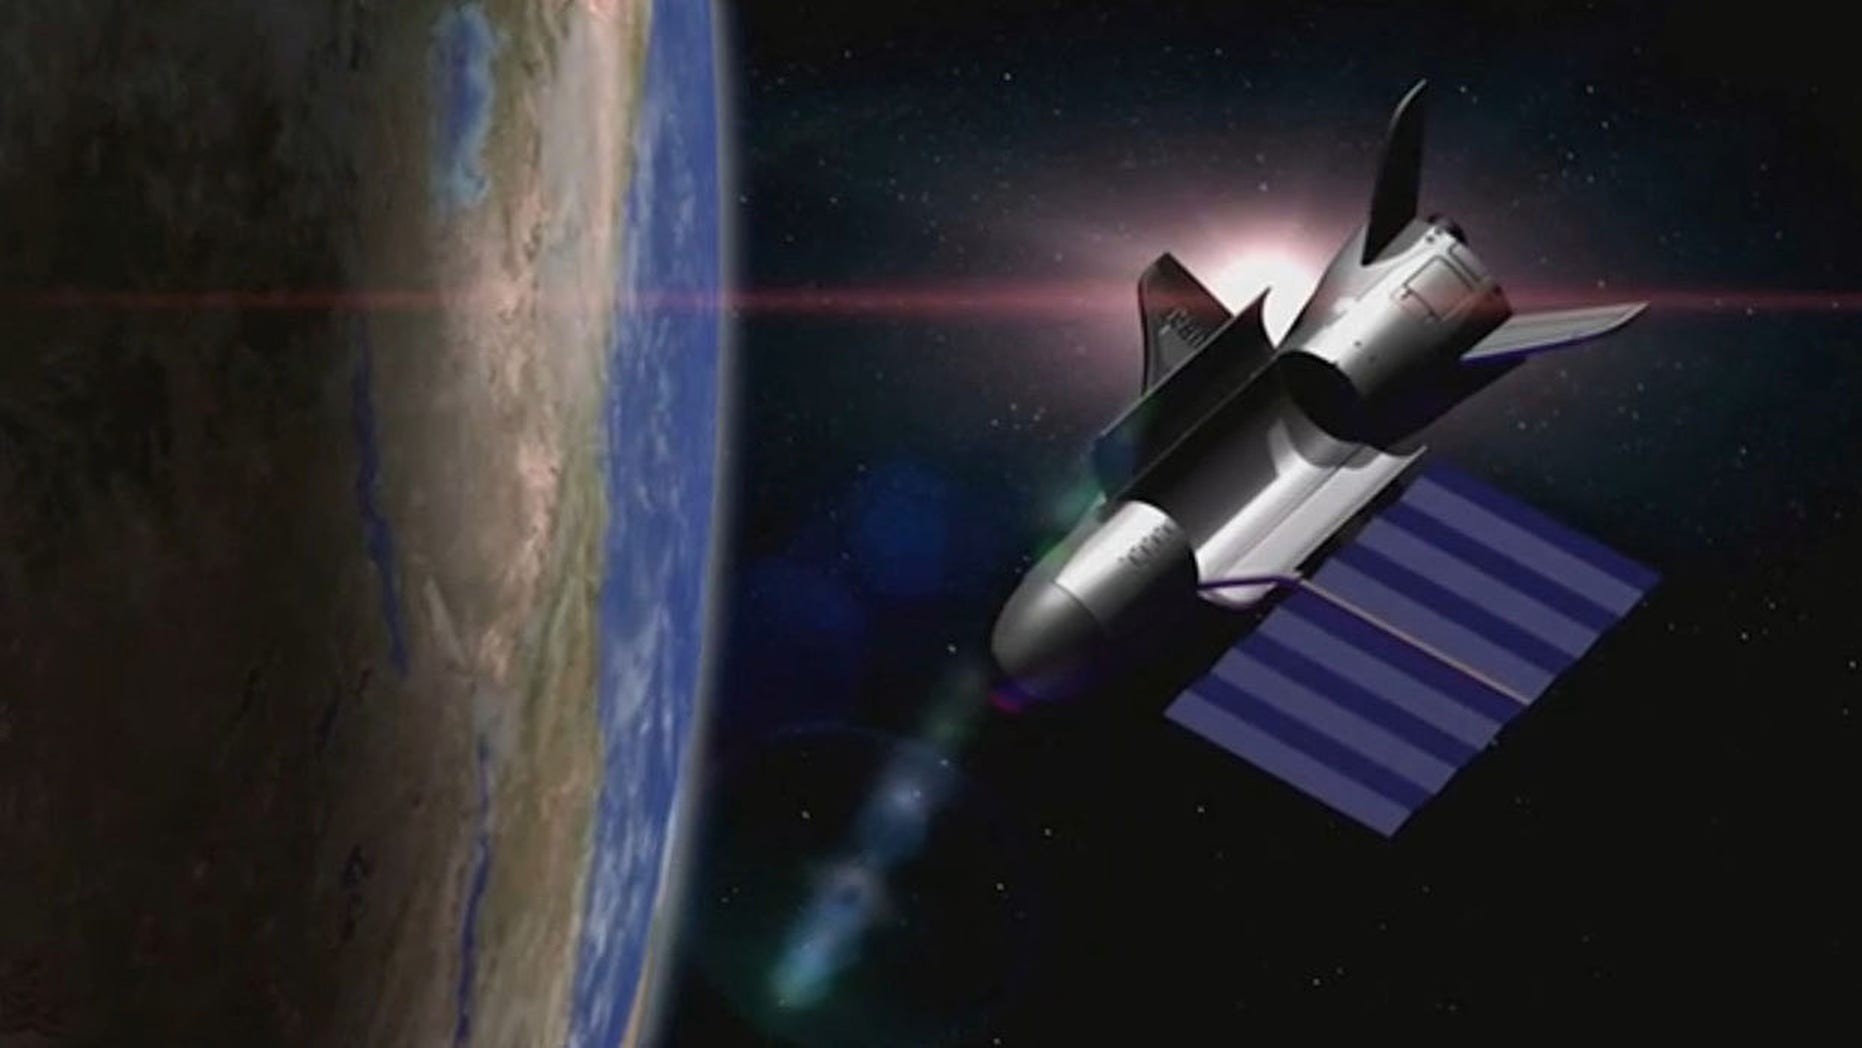 An artist's depiction of the U.S. Air Force's unmanned X-37B space plane in orbit with its solar array deployed and payload bay open.